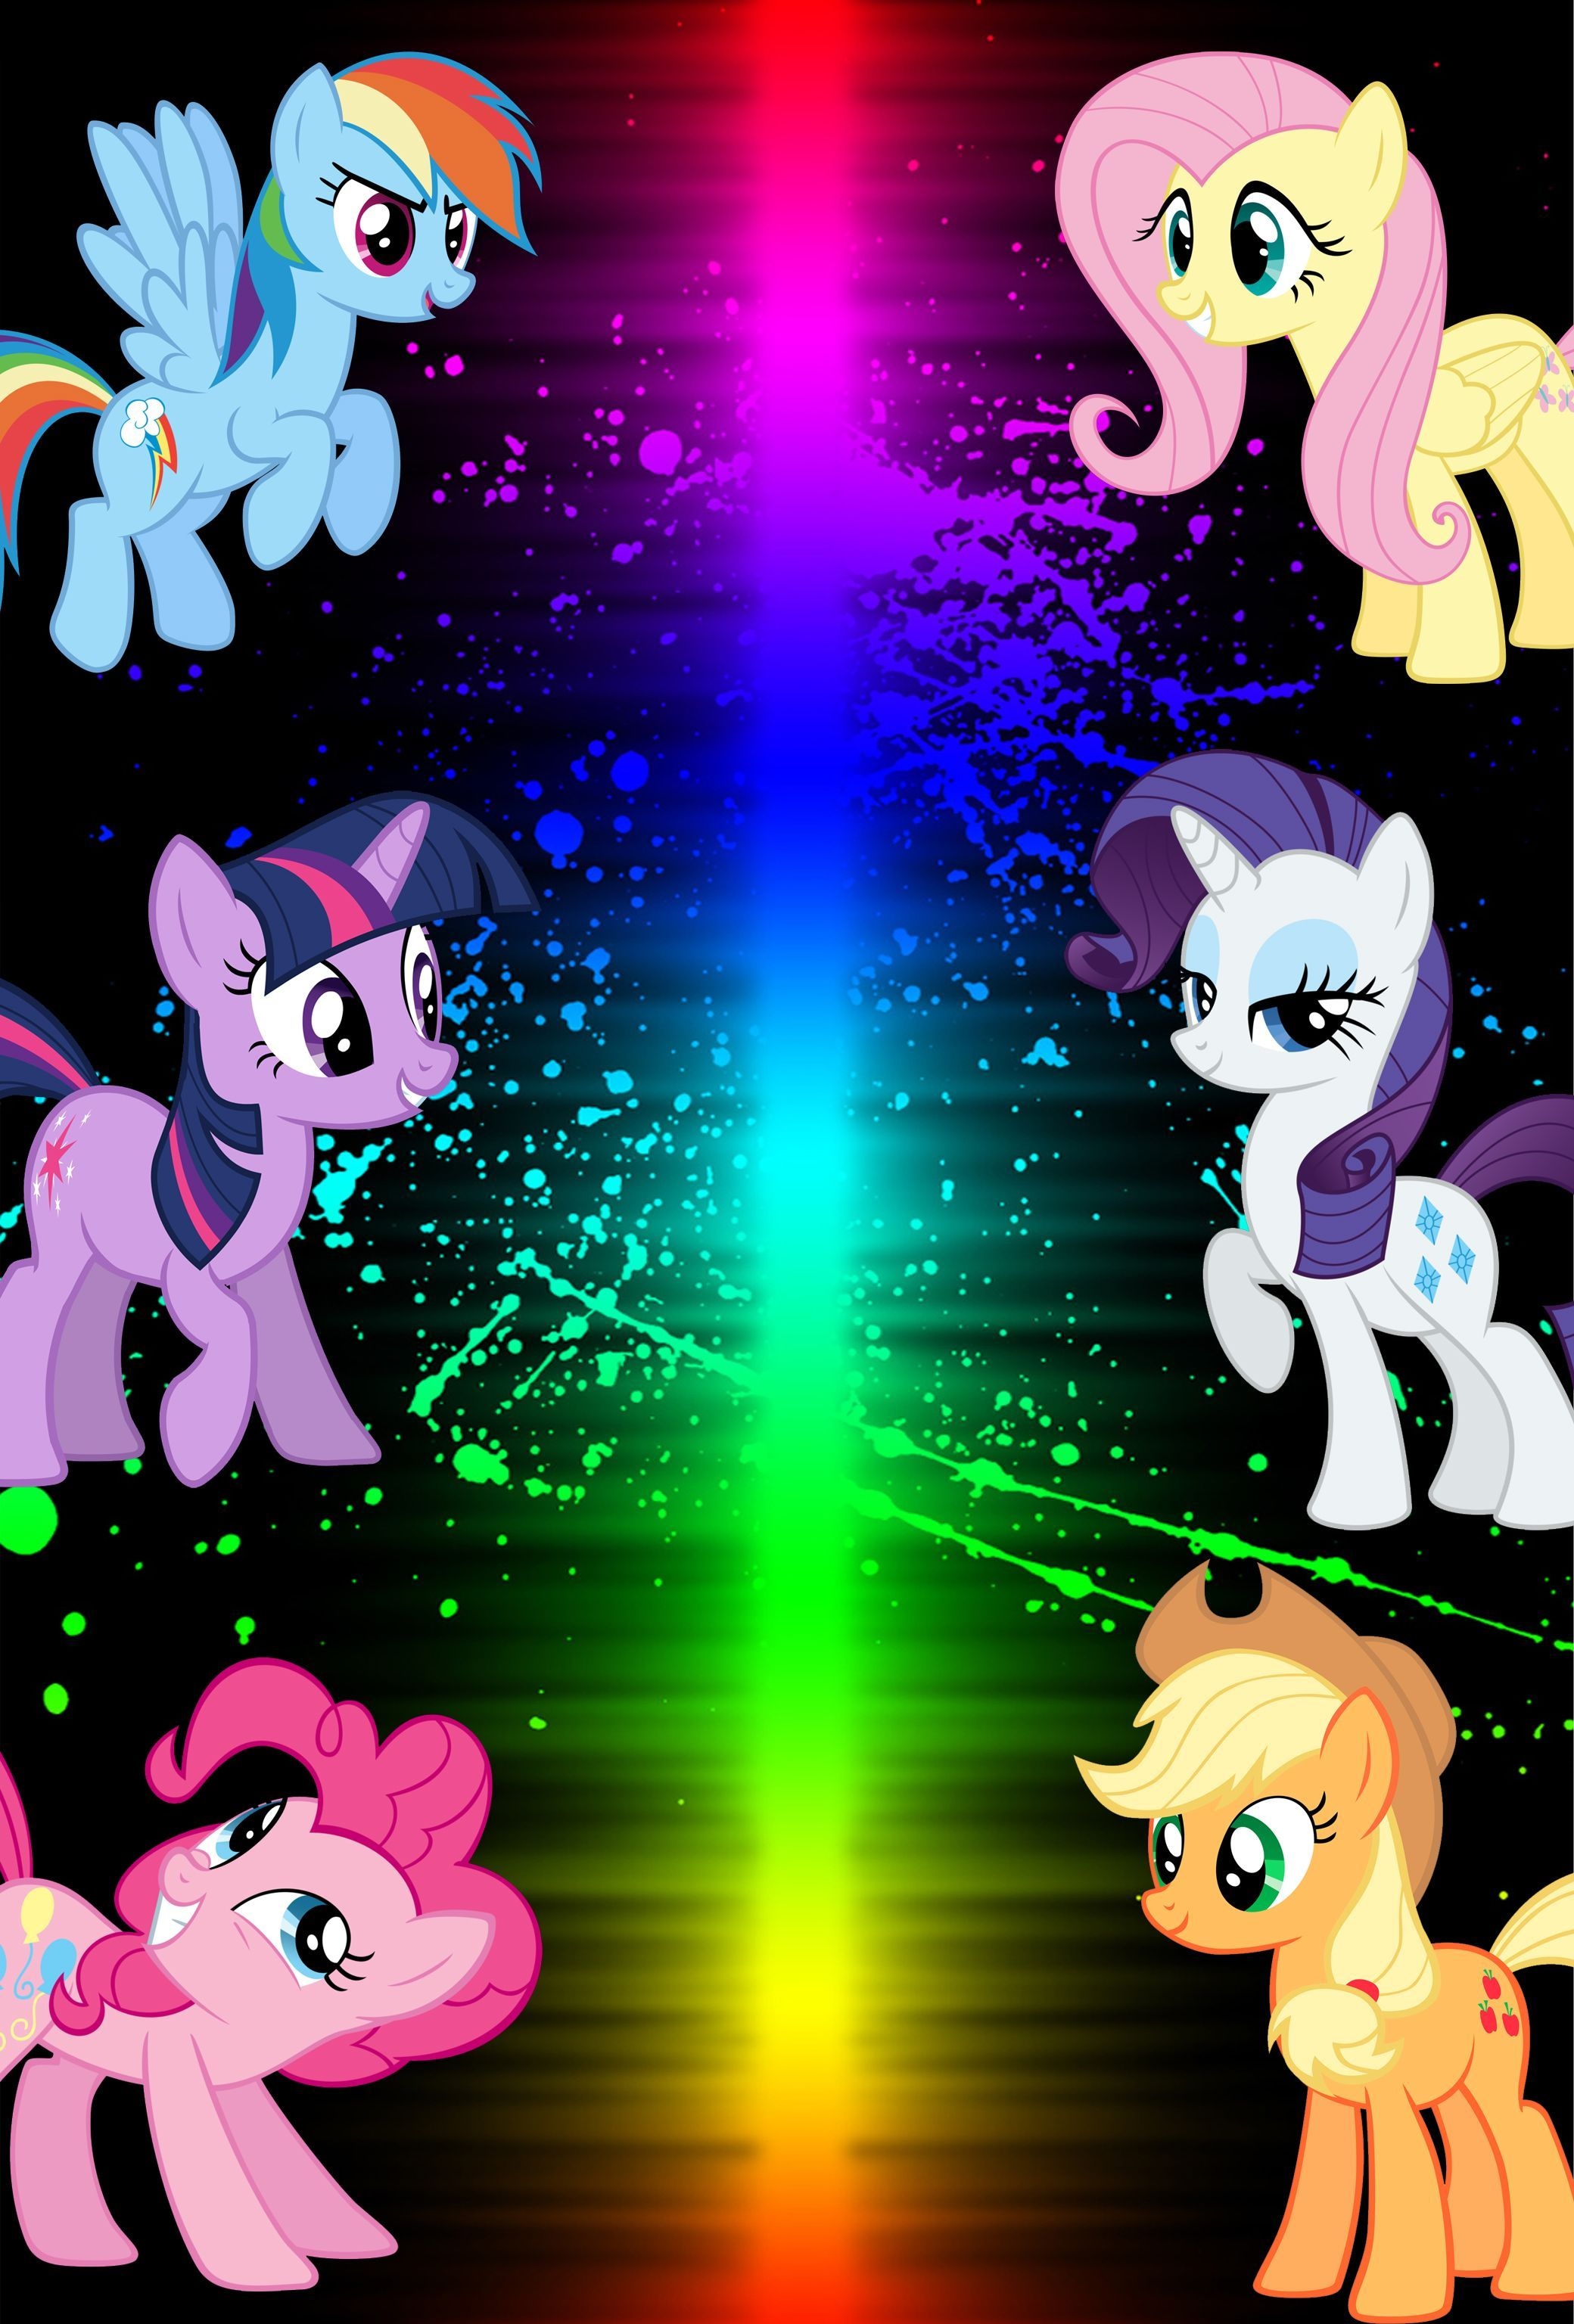 Wallpapers Of My Little Pony Posted By Ryan Thompson